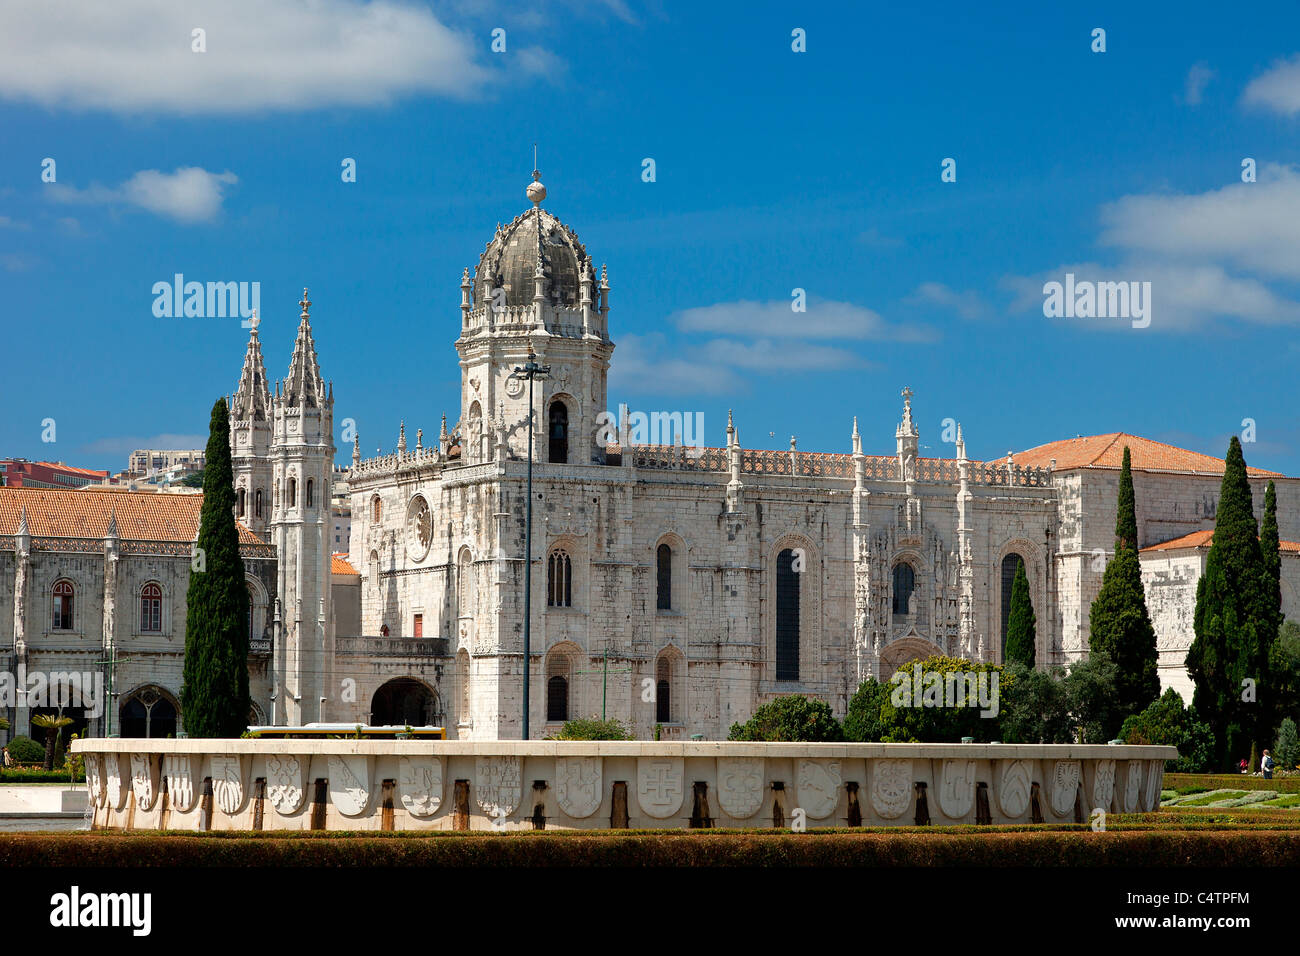 Europe, Portugal, Mosteiro dos Jeronimos in Lisbon - Stock Image